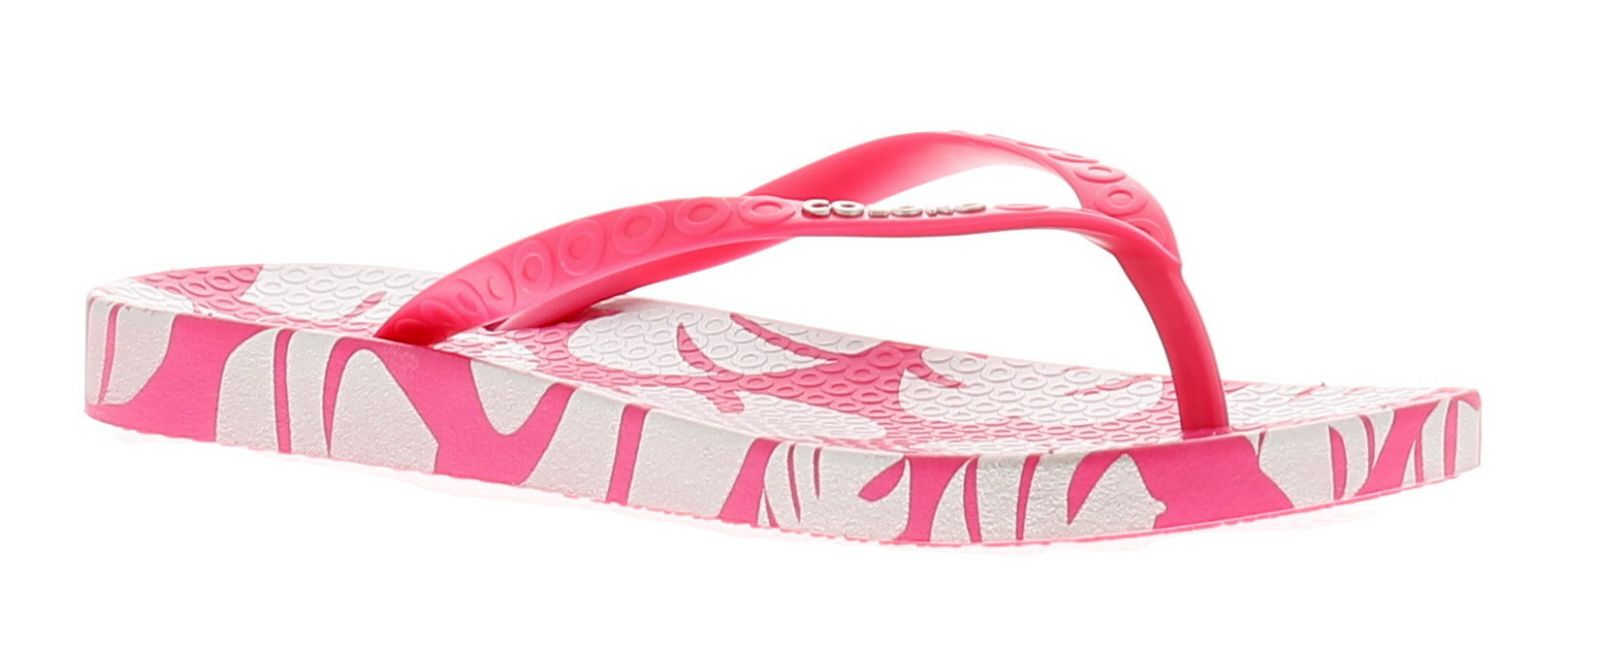 Ladies Women'ss Flip Flop Casual Holiday Summer Pool